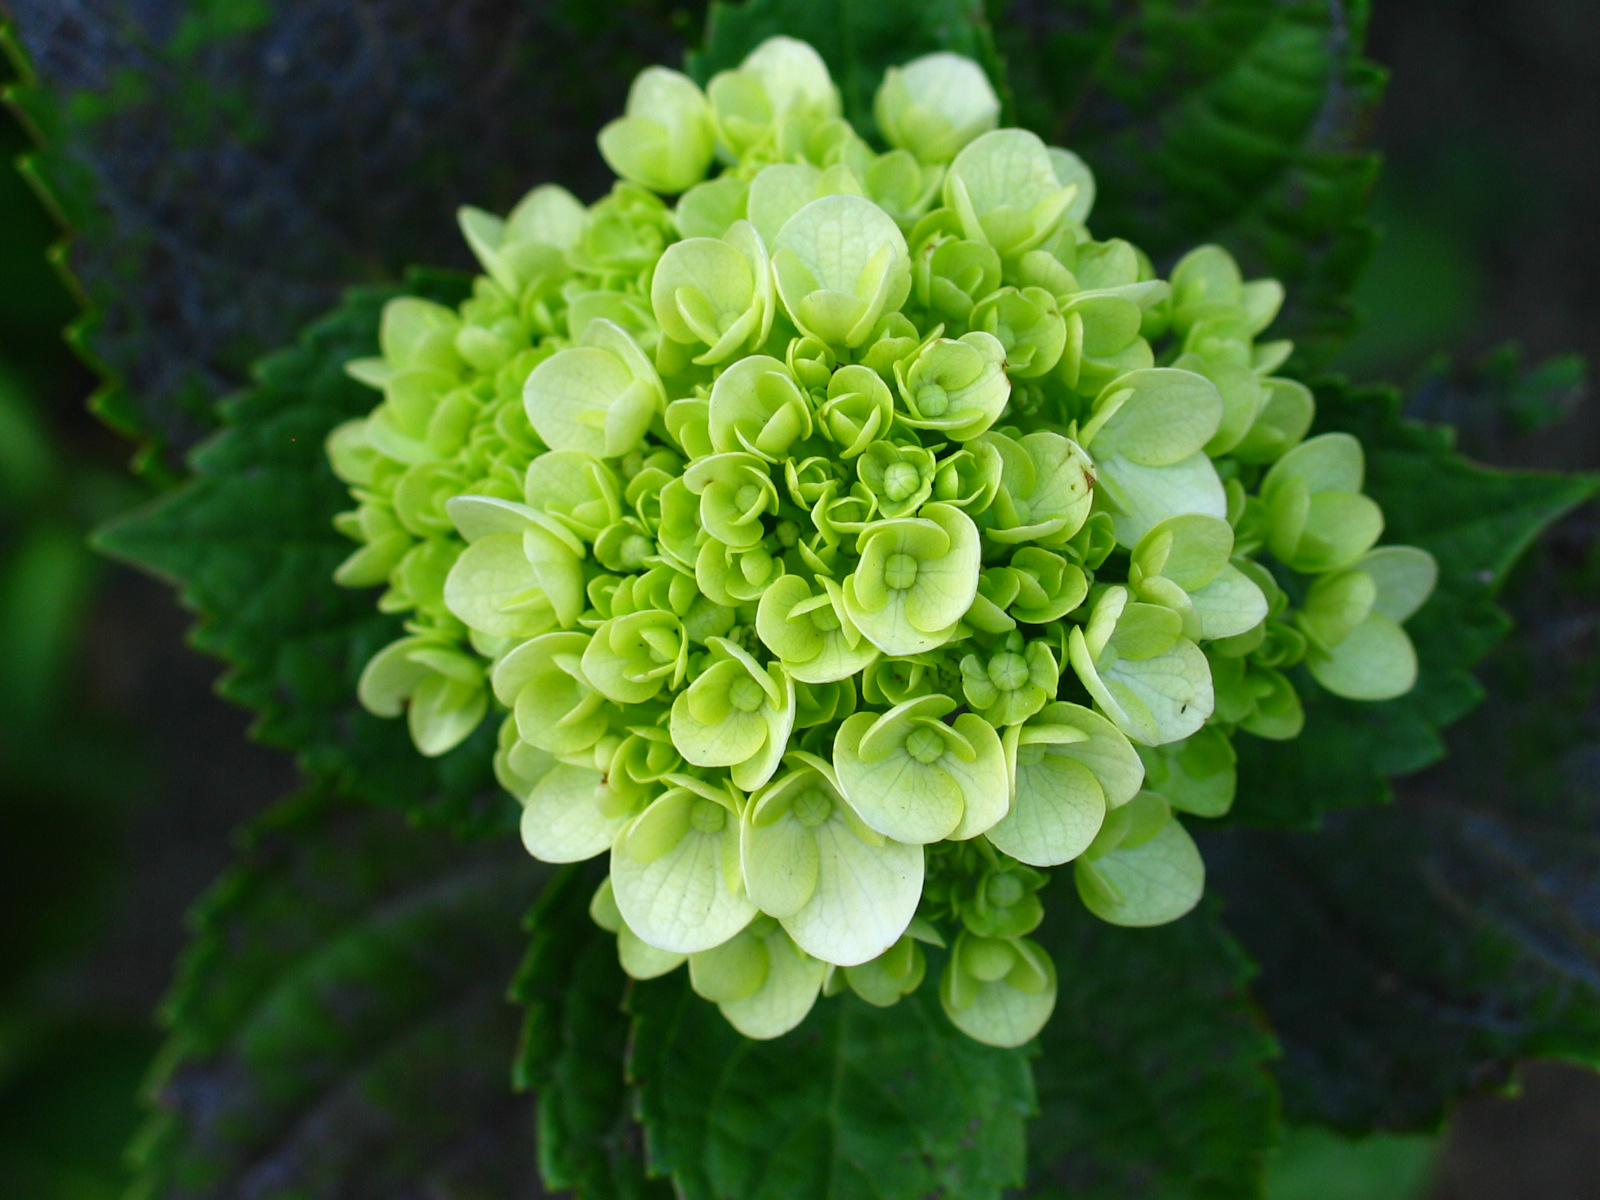 Tips for creating the perfect green flower arrangement